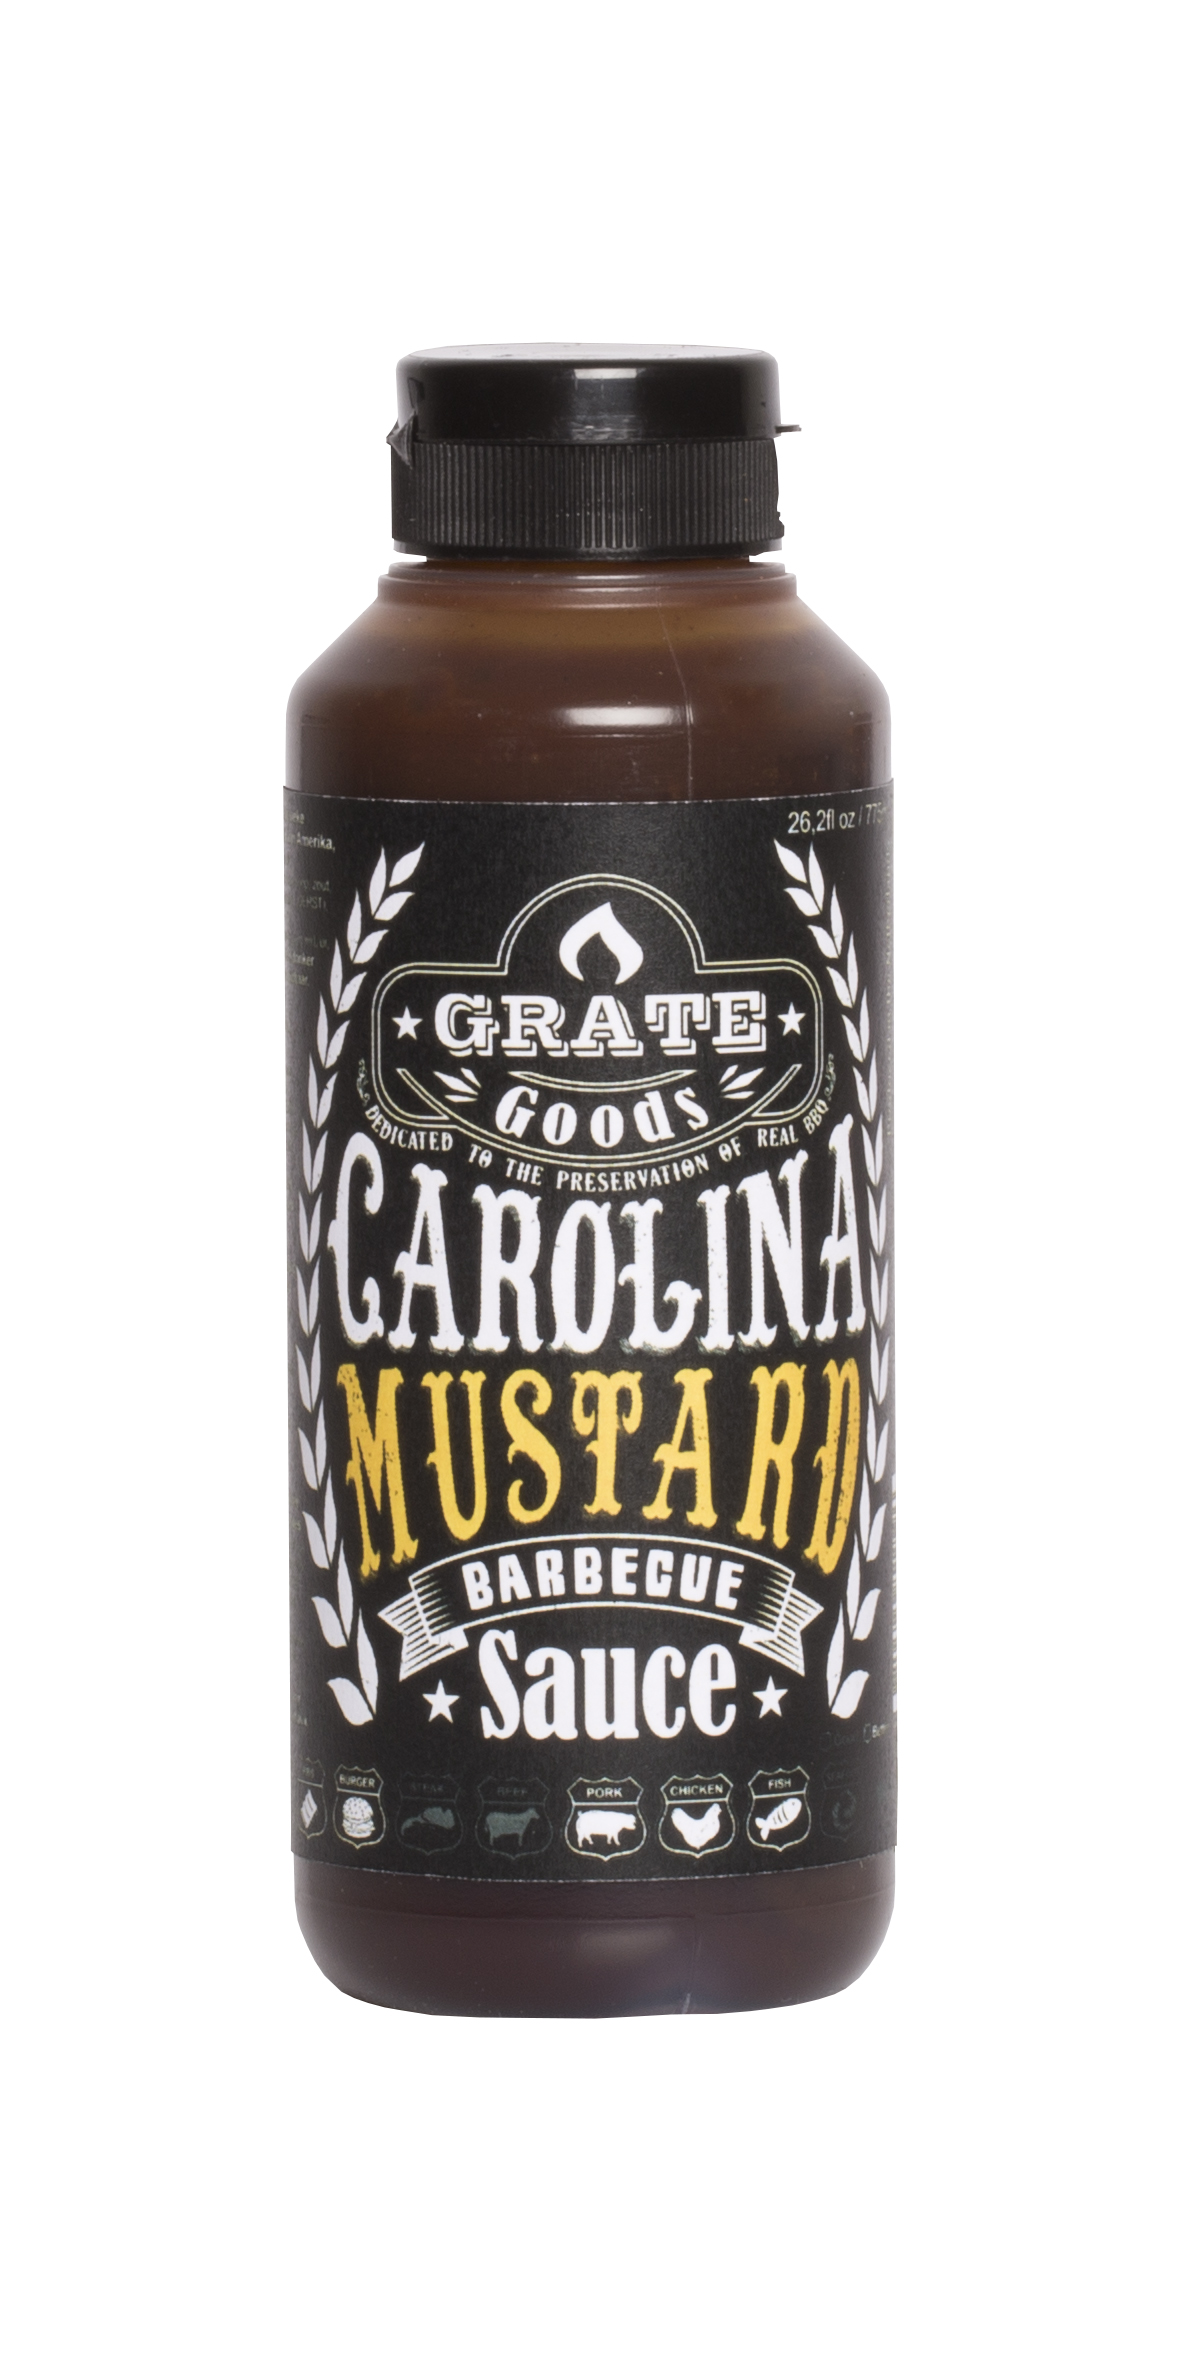 Grate Goods Carolina Mustard BBQ Sauce 265ml